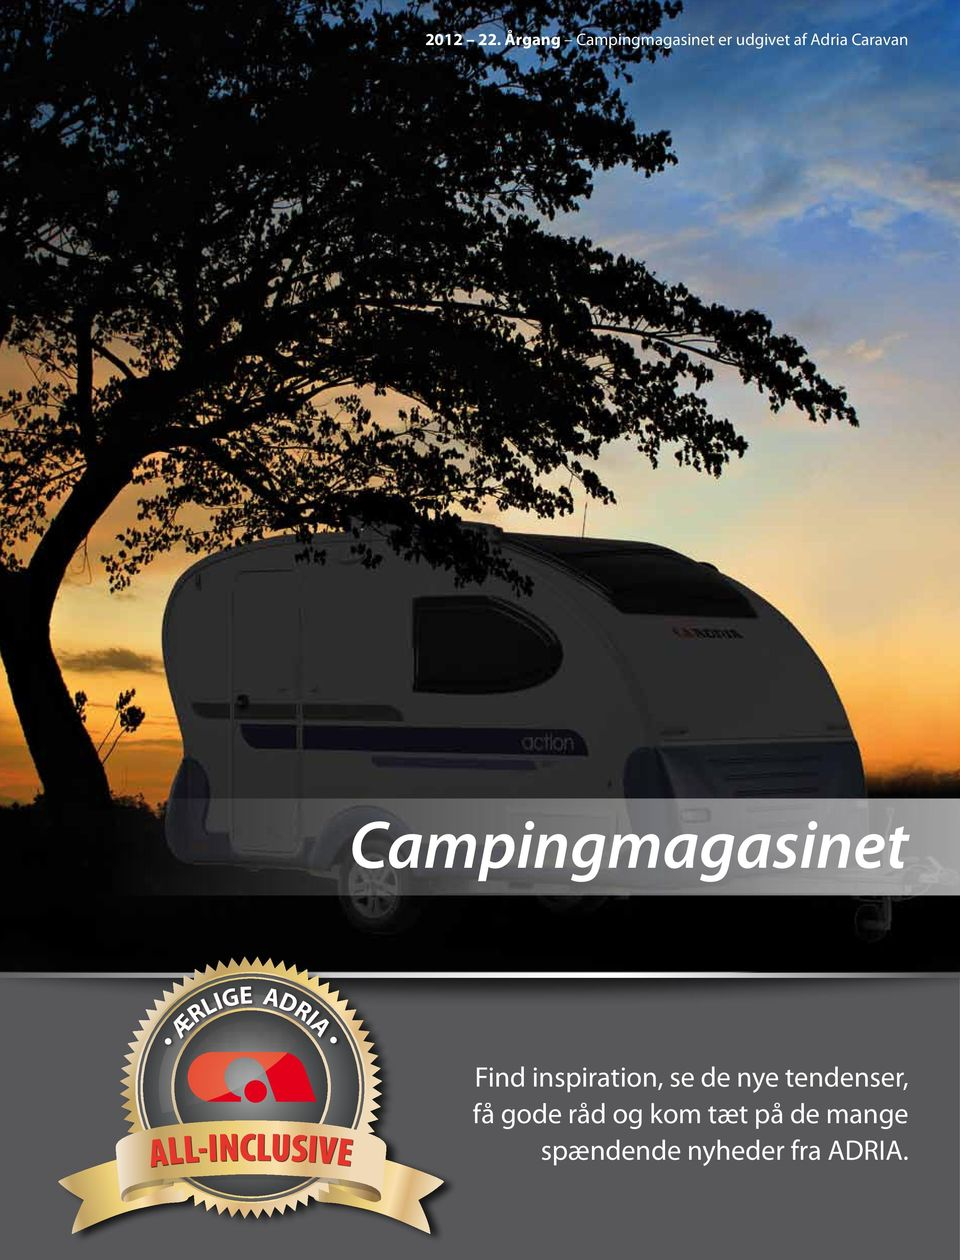 Campingmagasinet ÆRLIGE ADRIA ALL-INCLUSIVE Find